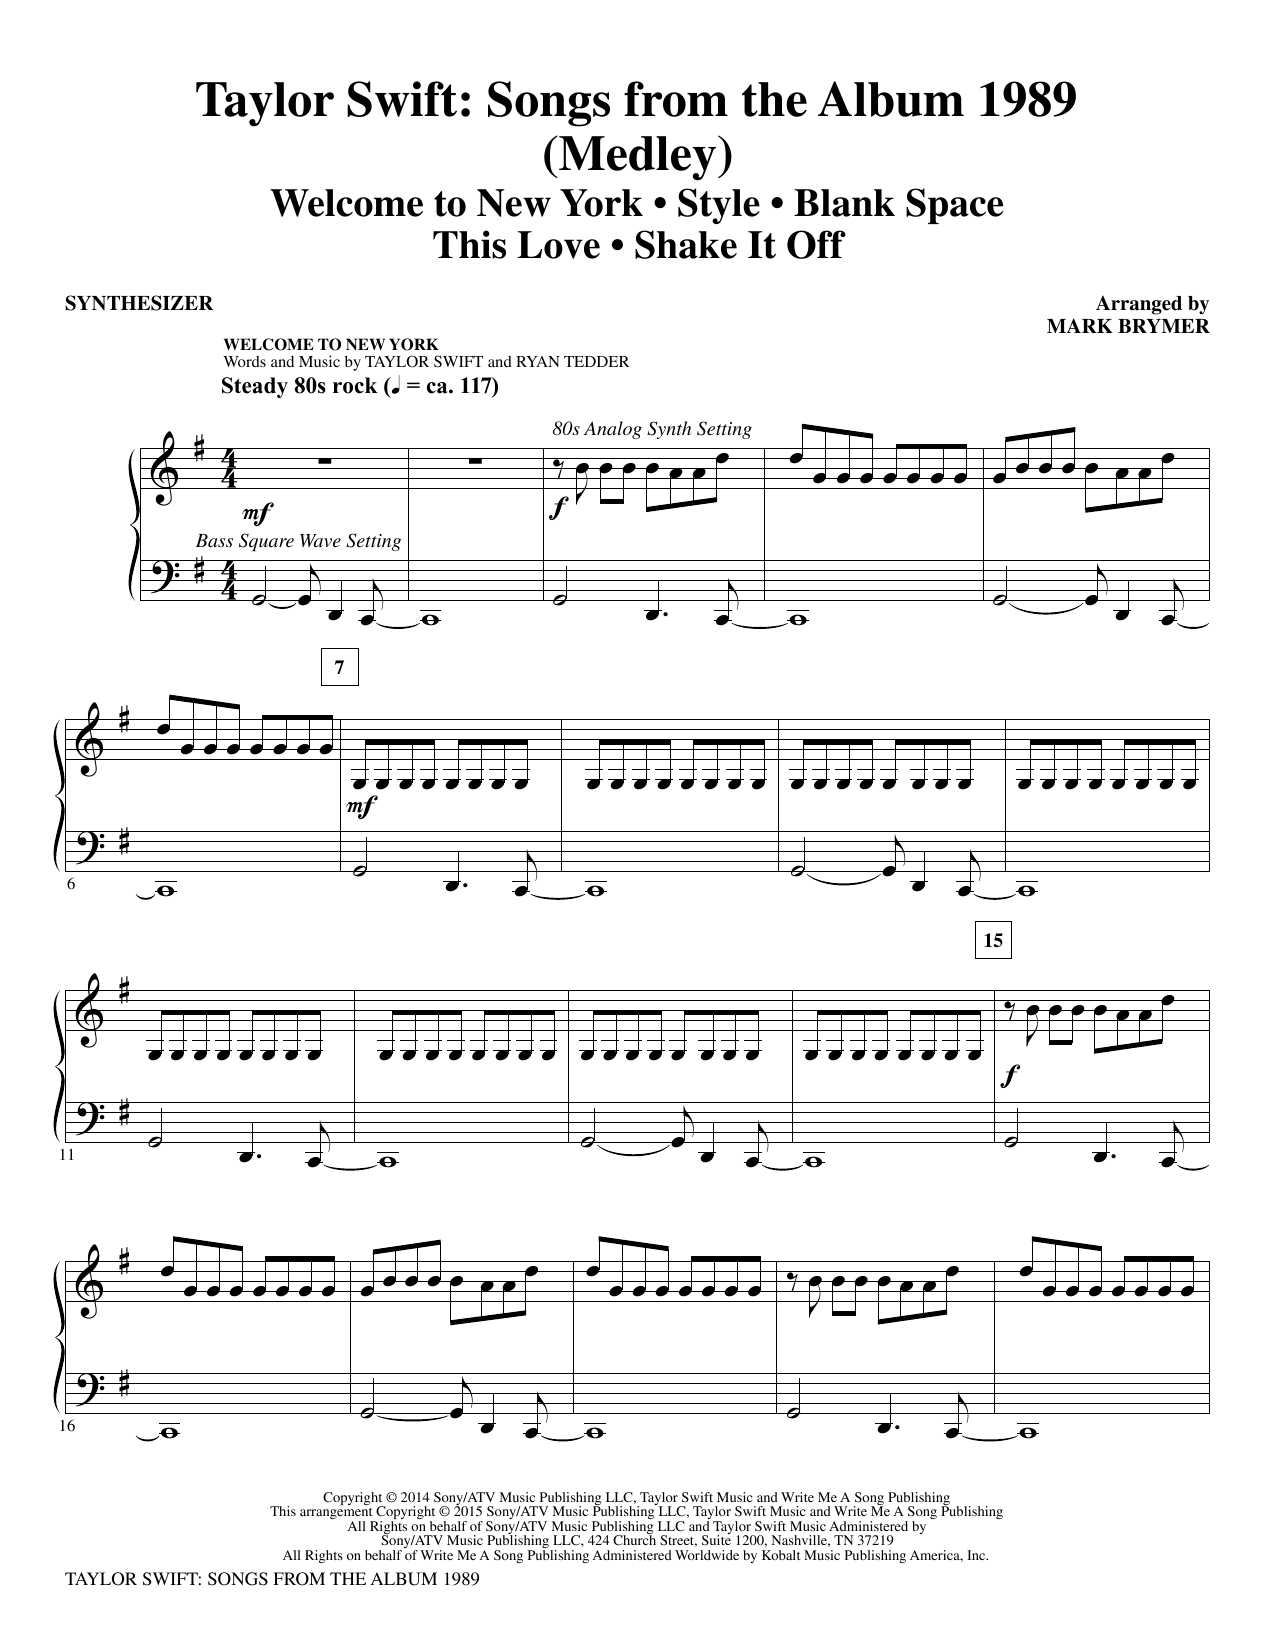 Taylor Swift: Songs from the Album 1989 (complete set of parts) sheet music for orchestra/band by Mark Brymer, Johan Schuster, Max Martin, Shellback and Taylor Swift. Score Image Preview.